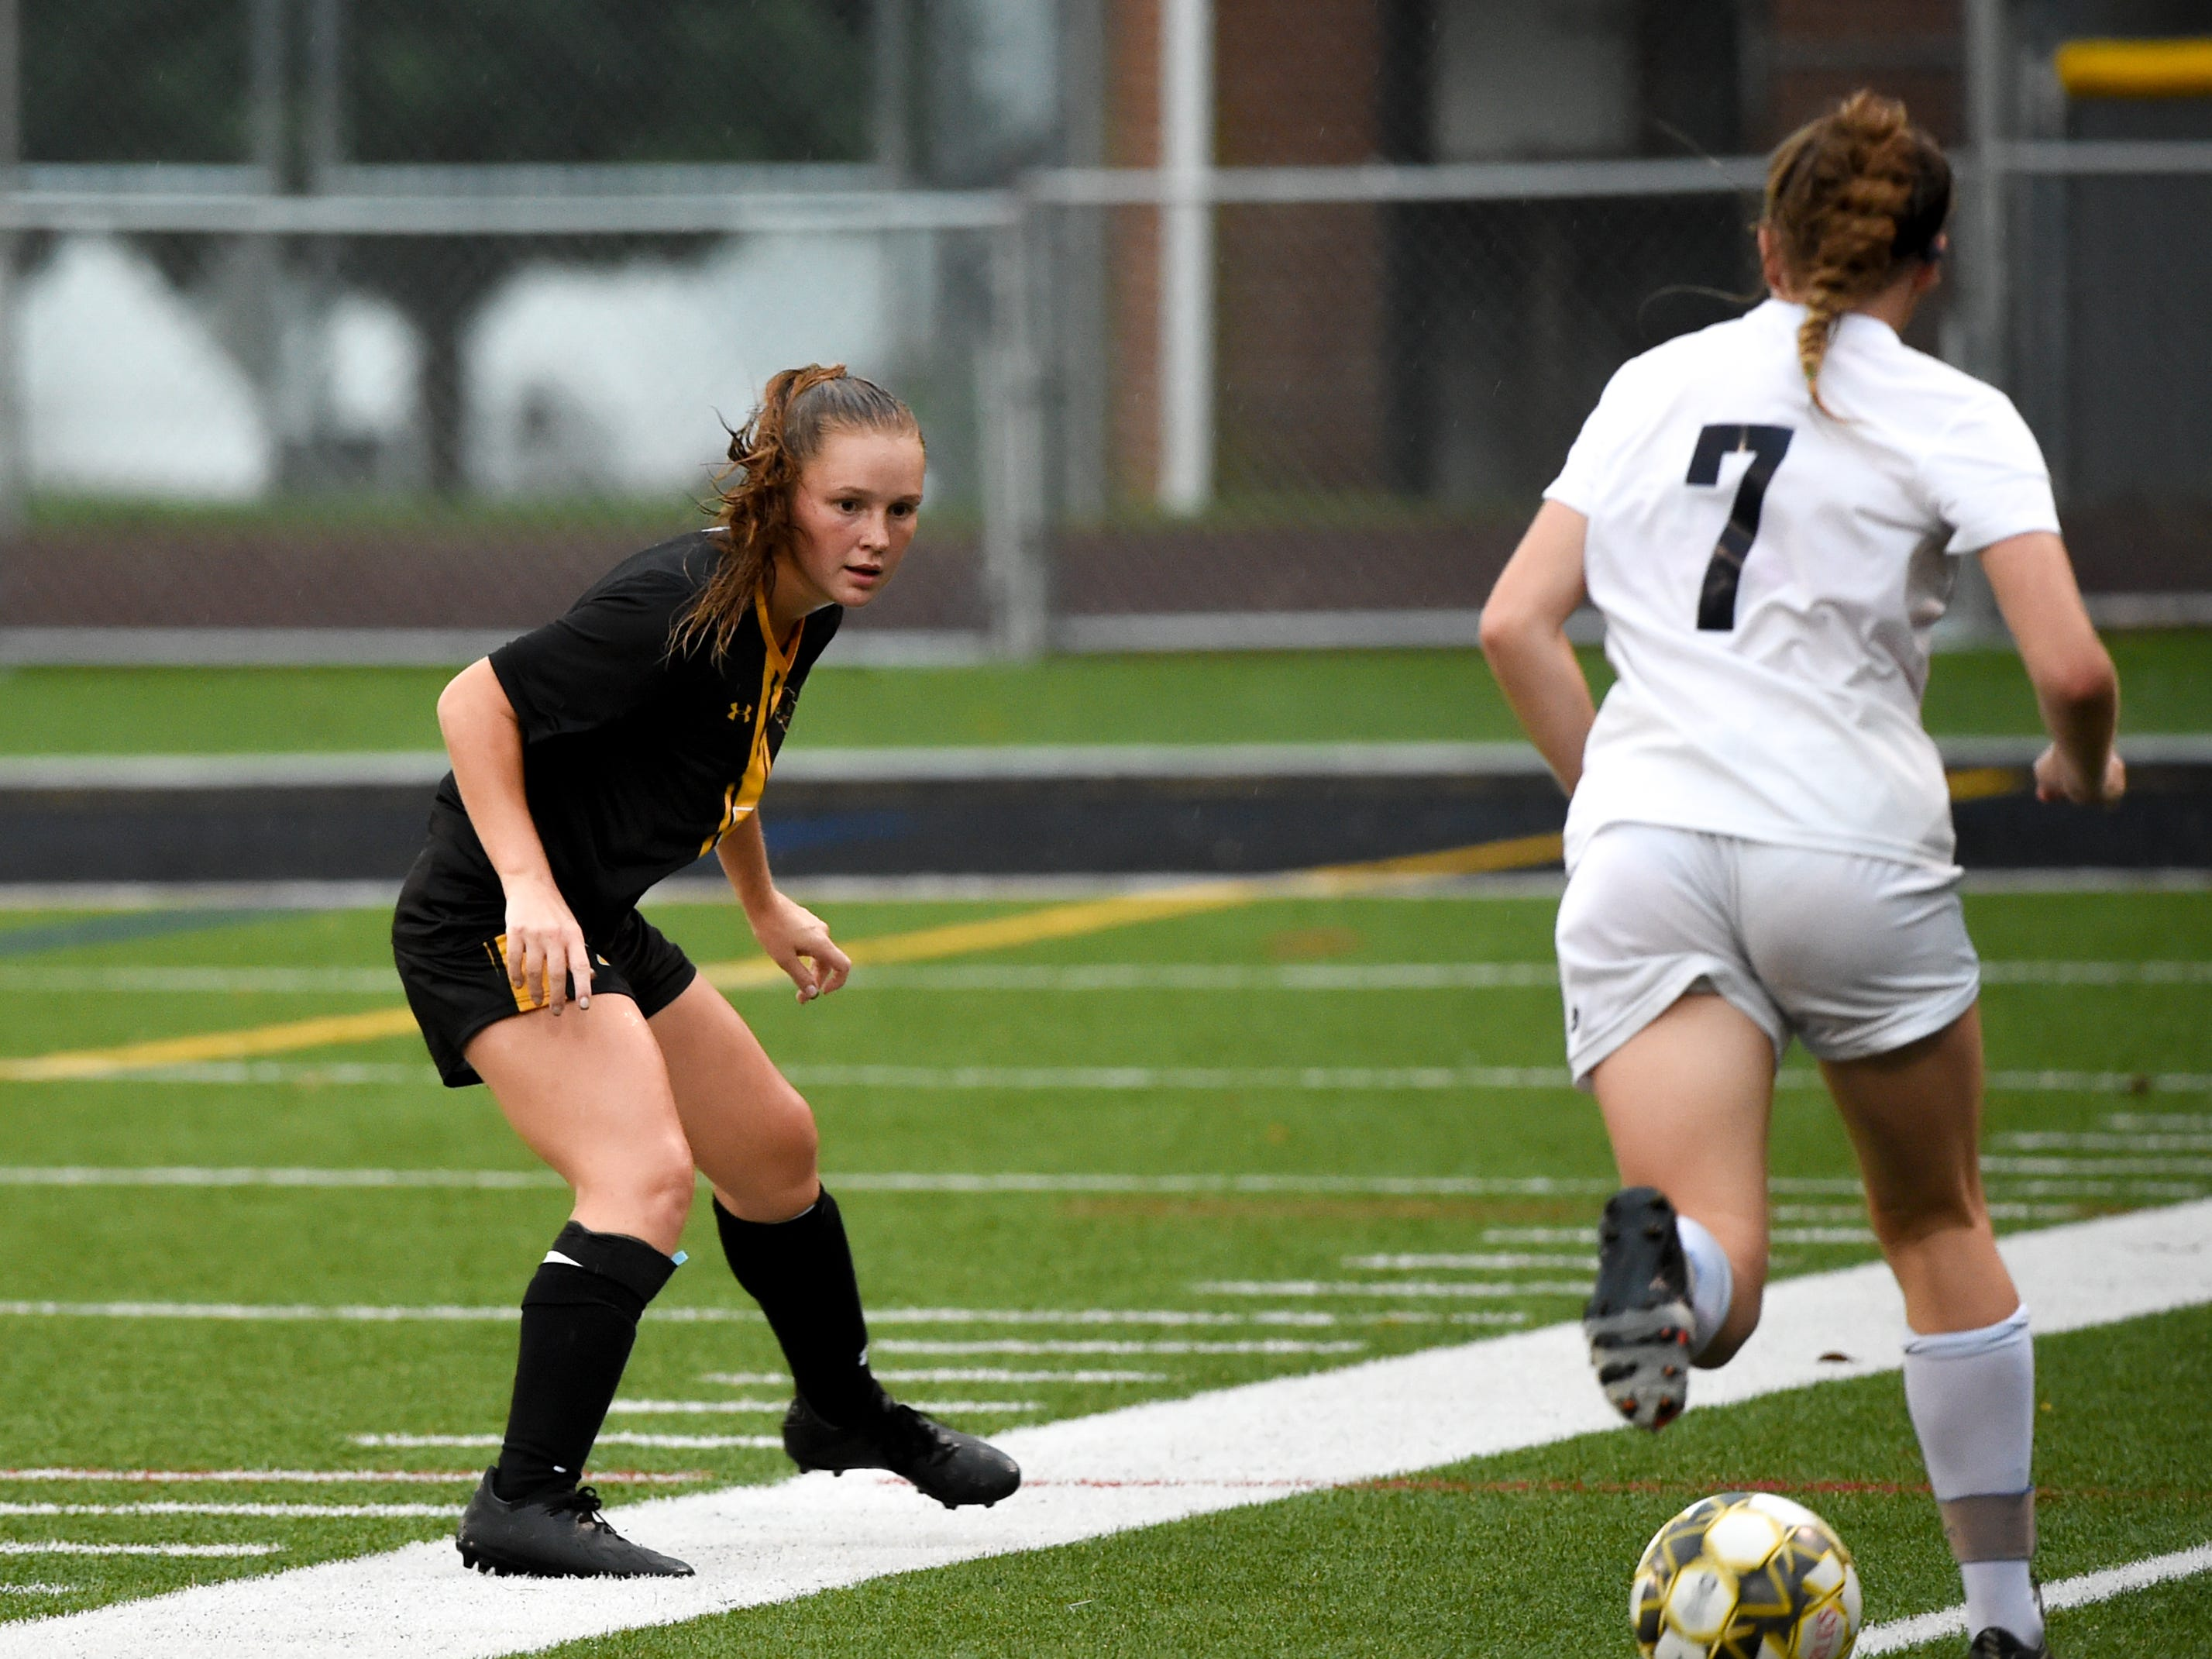 Red Lion's Emily Tollinger (5) looks for a chance to make a tackle, October 11, 2018. The Lady Lions beat the Wildcats 4-0.